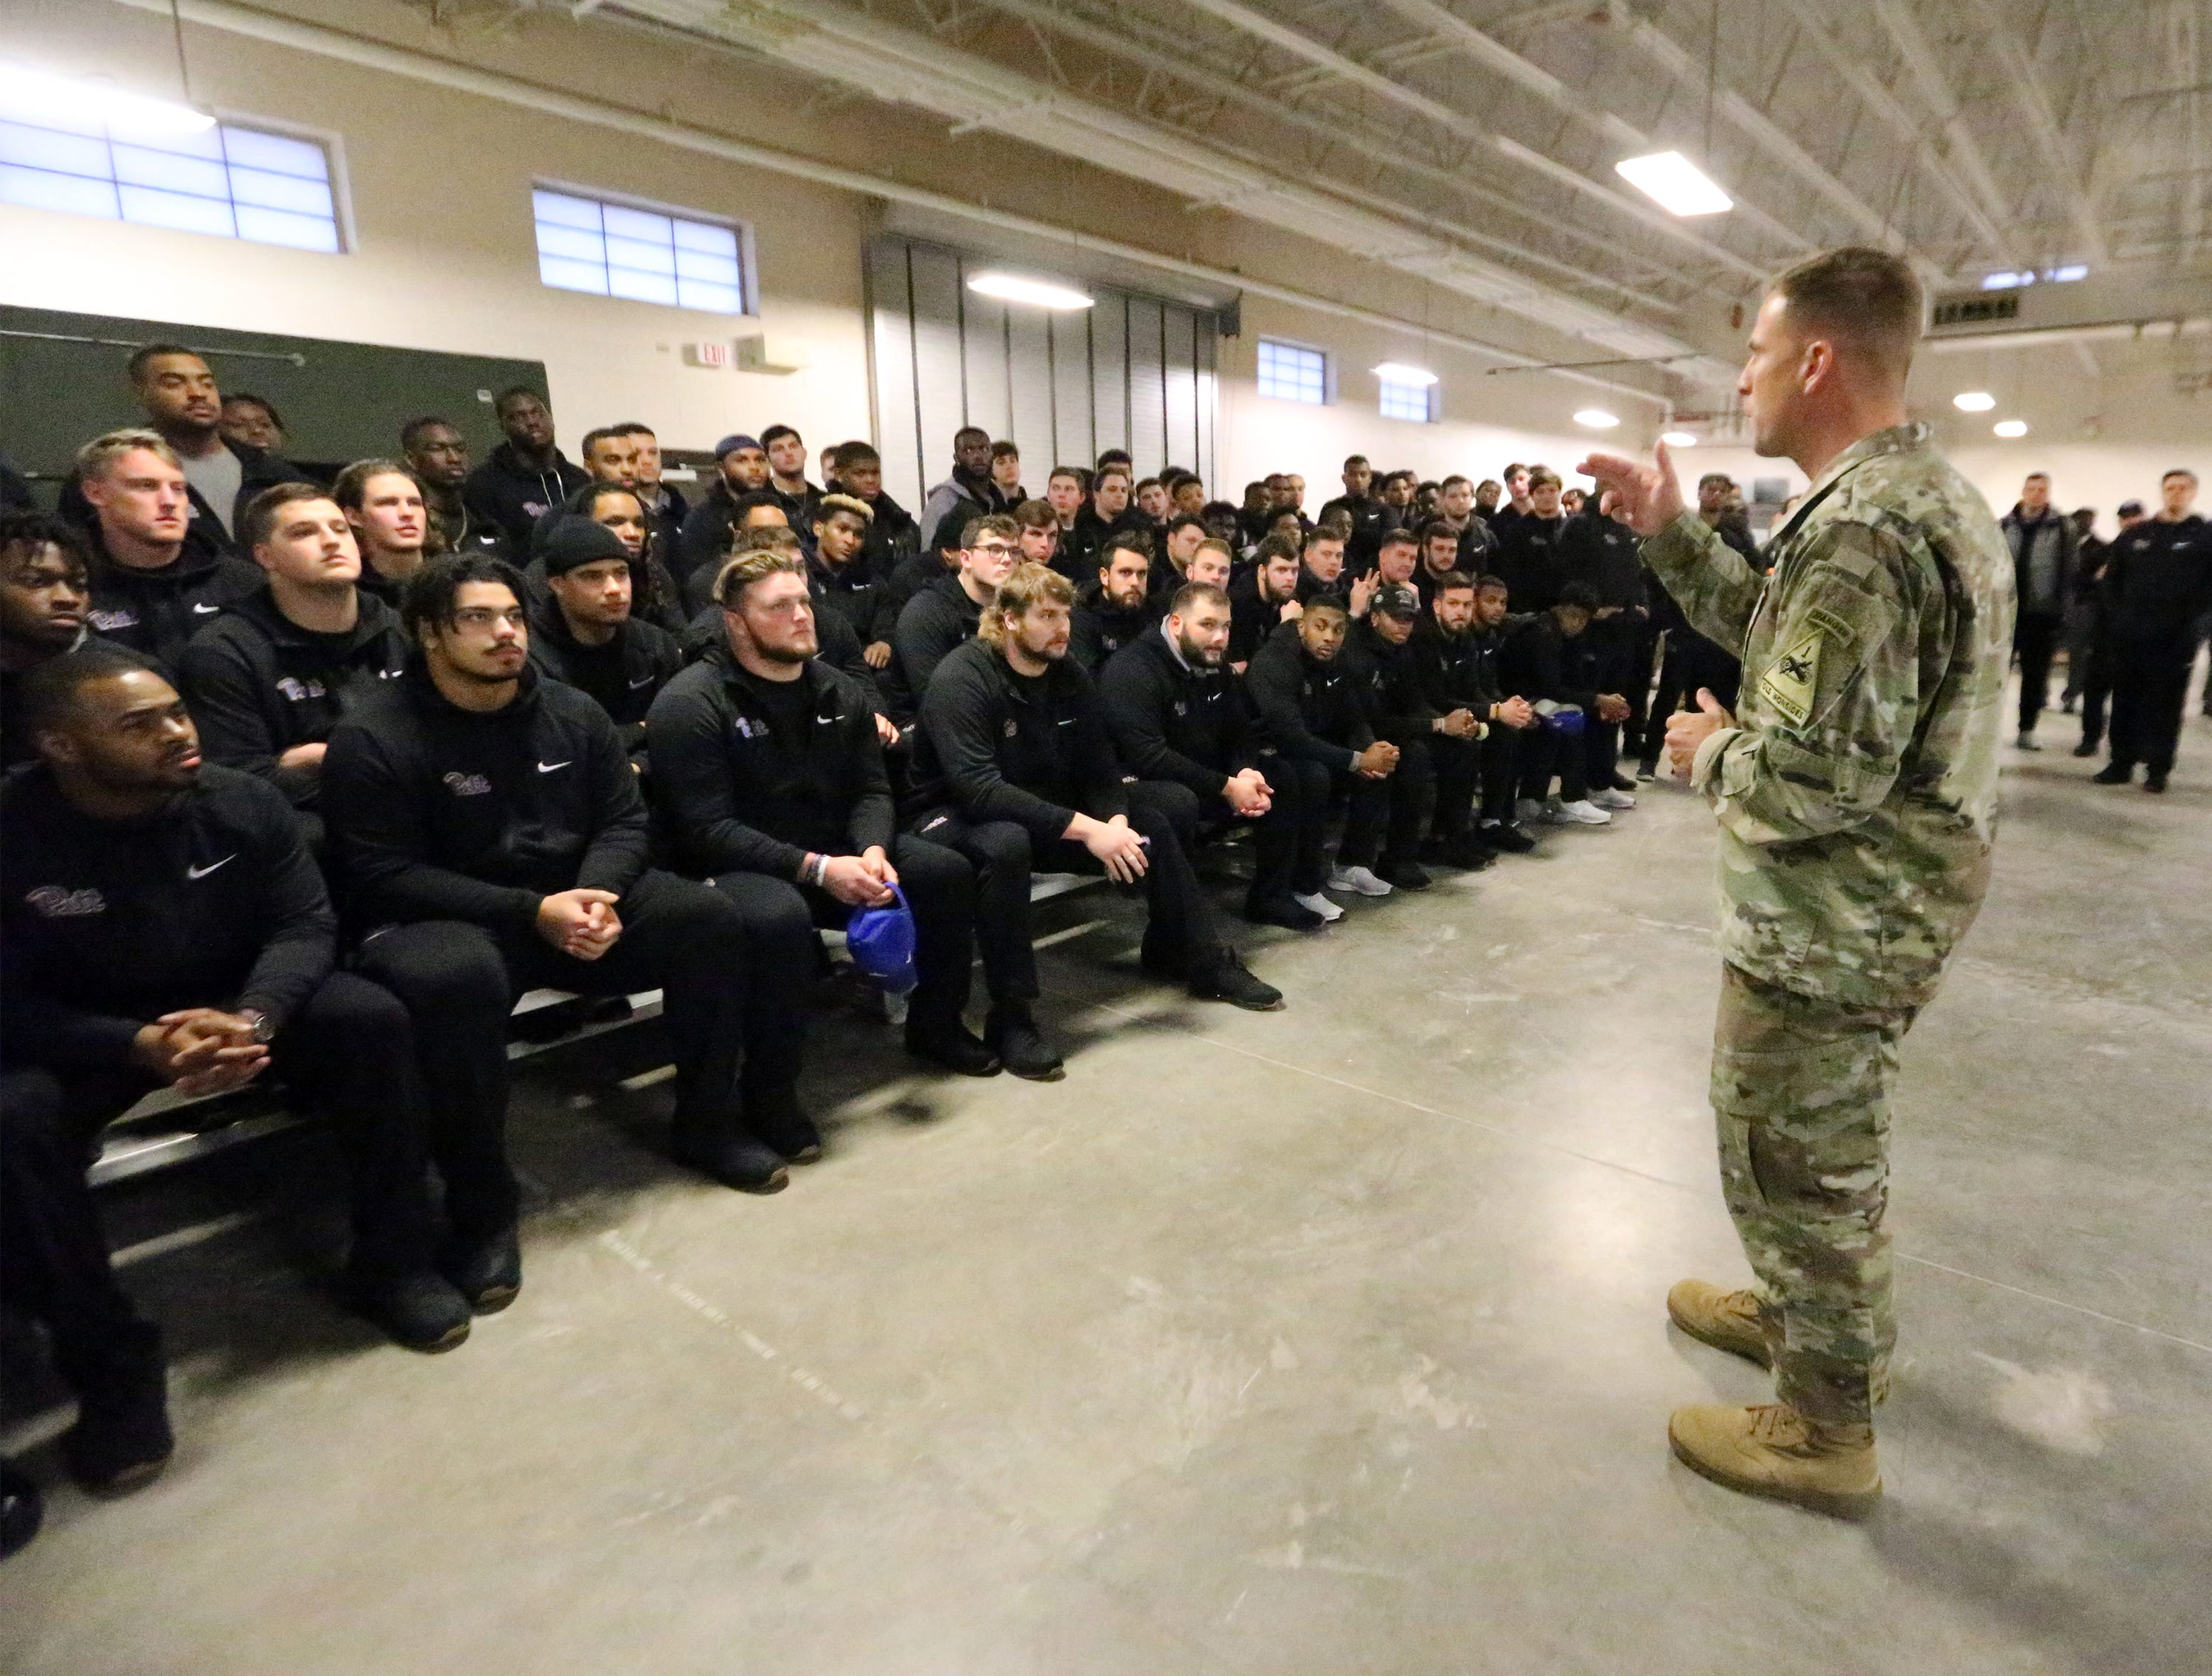 Brig. Gen. Scott Naumann, deputy commanding general of Fort Bliss greets the University of Pittsburgh football team upon their arrival at of the post's simulator facilities Friday.